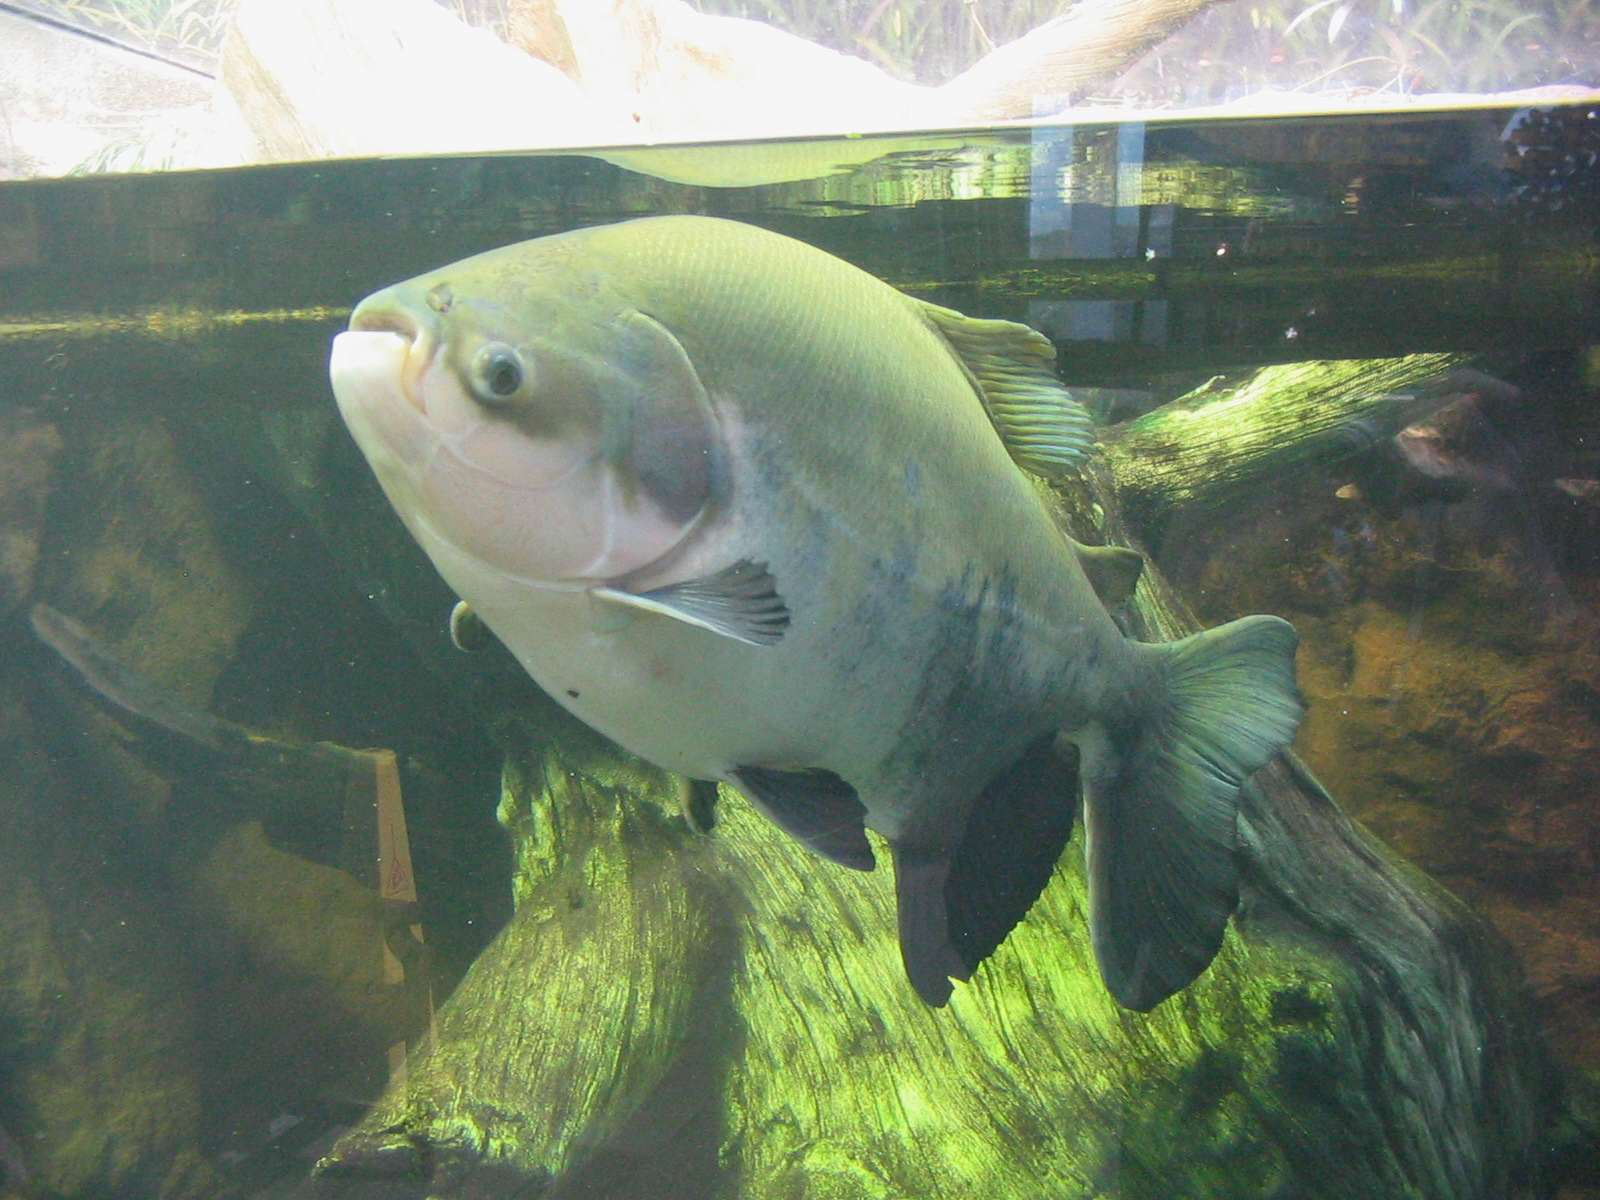 Testicle Eating Fish Has Been Discovered Swimming In Lakes pacu 2